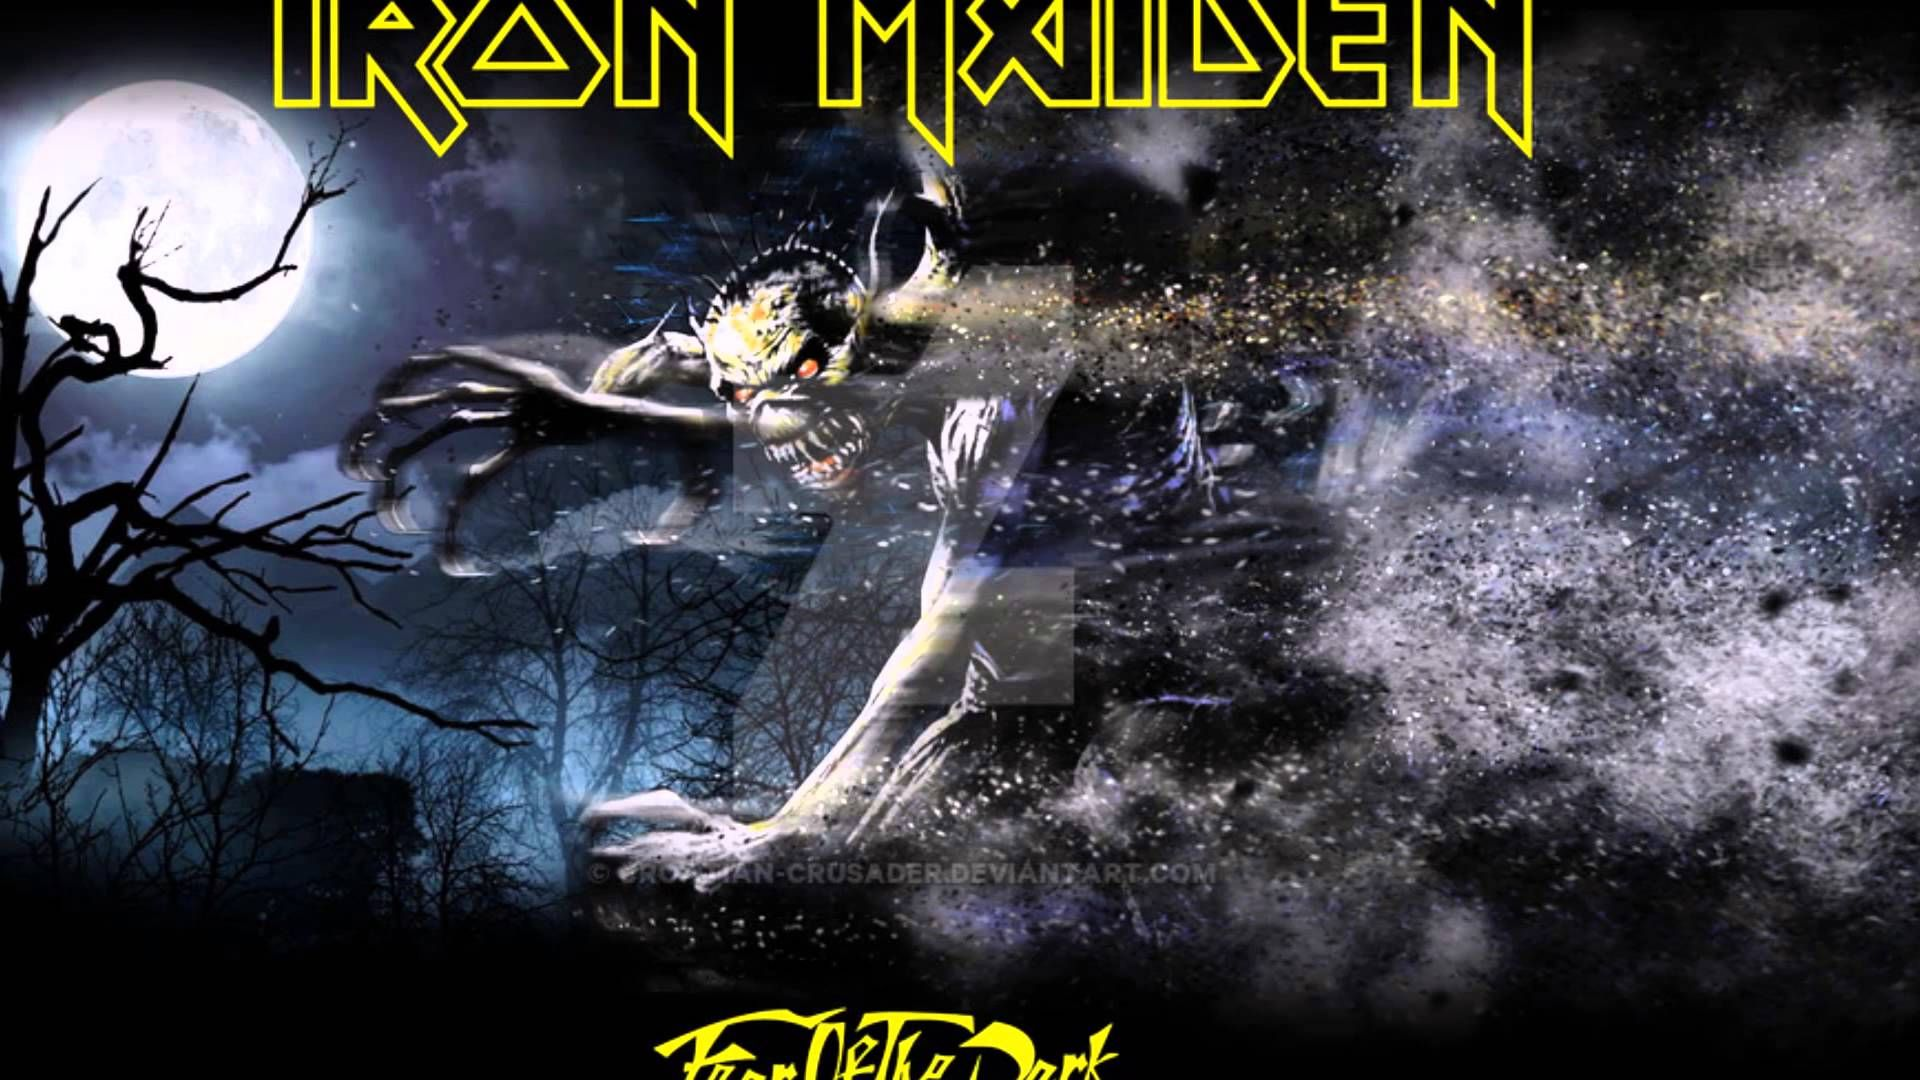 Iron Maiden Fear Of The Dark Wallpapers Photo On Wallpaper 1080p